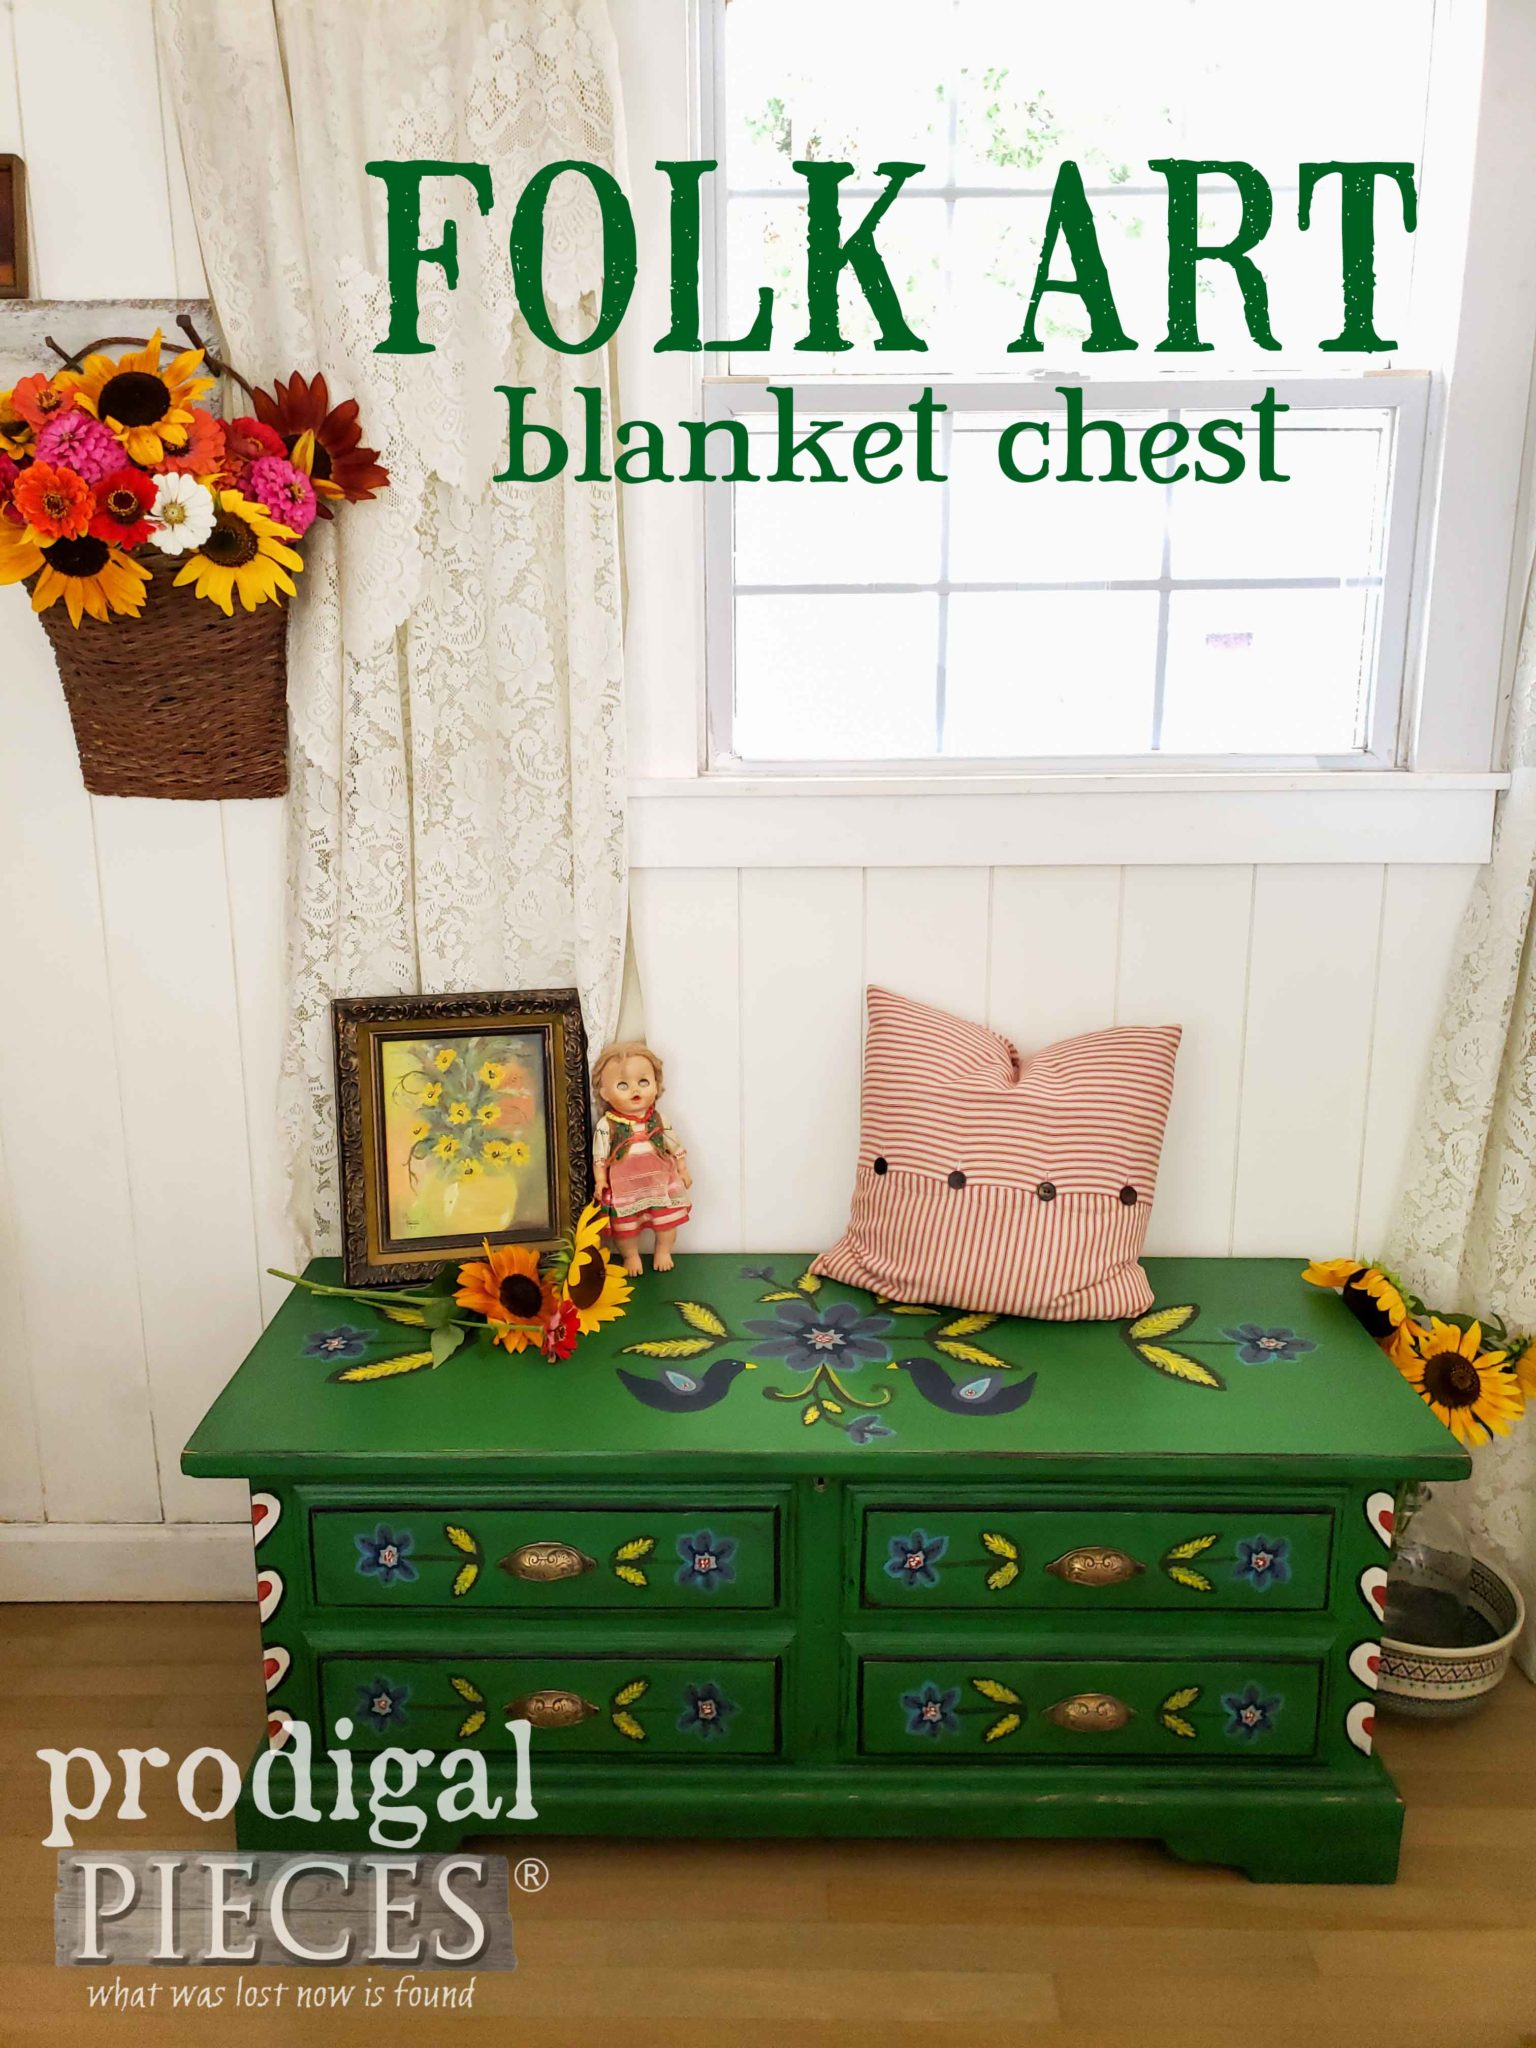 Rebulit and Created by Hand, this Folk Art Blanket Chest tells a story by Larissa of Prodigal Pieces | prodigalpieces.com #prodigalpieces #handmade #furniture #diy